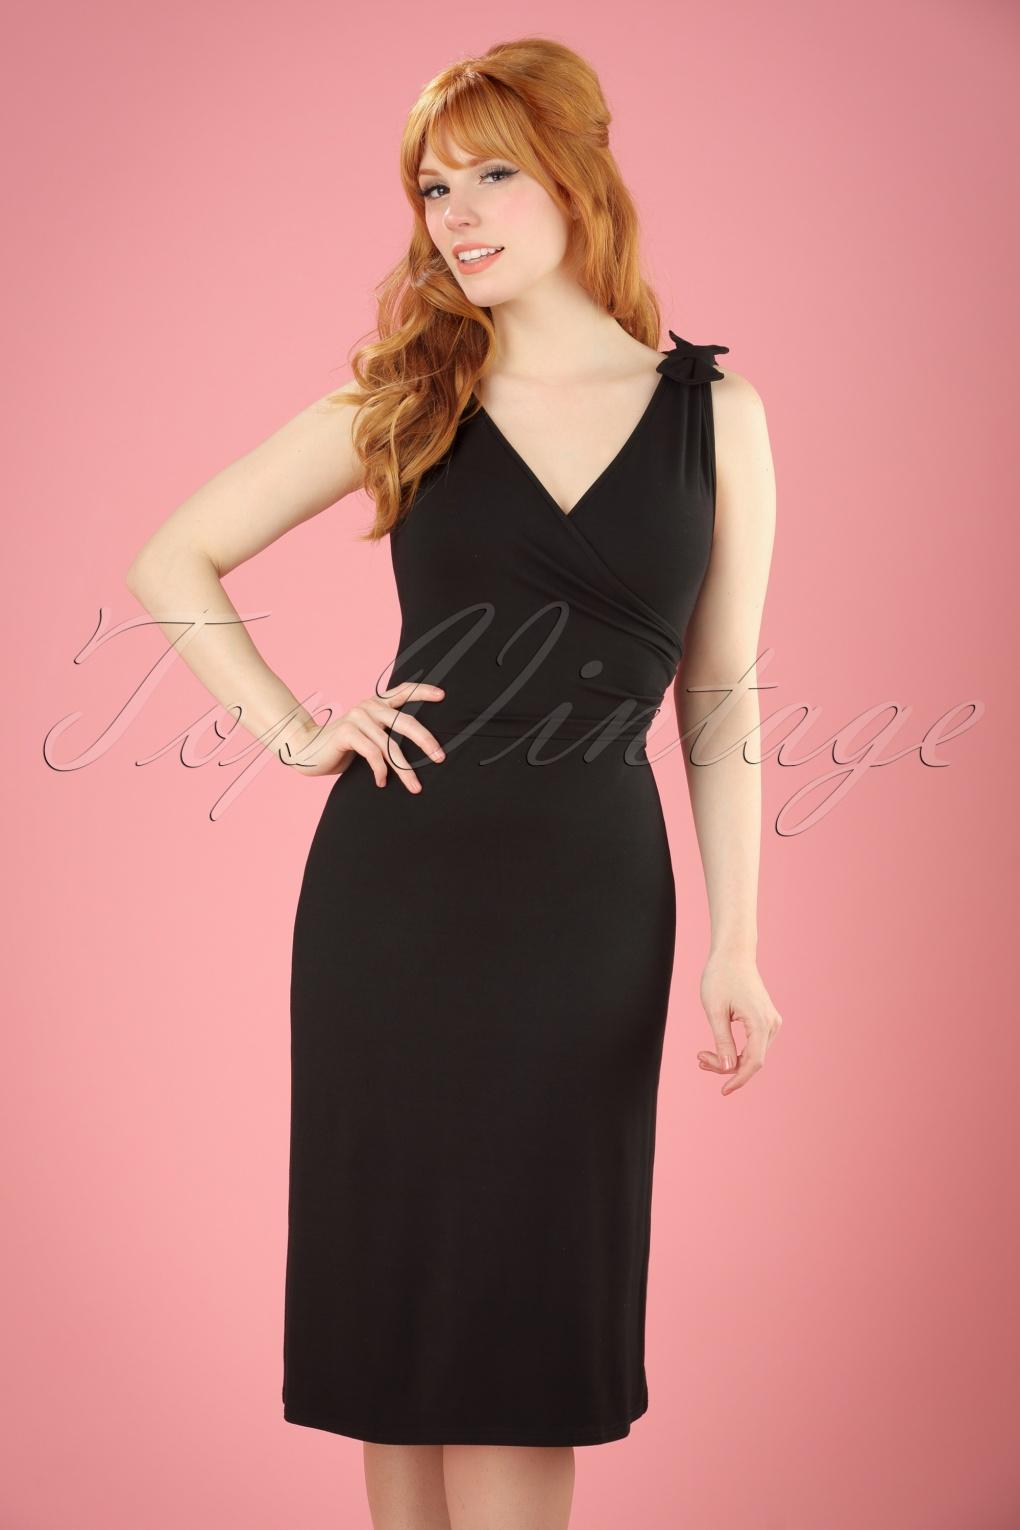 Vintage Inspired Cocktail Dresses, Party Dresses 50s The Janice Dress in Black £52.64 AT vintagedancer.com